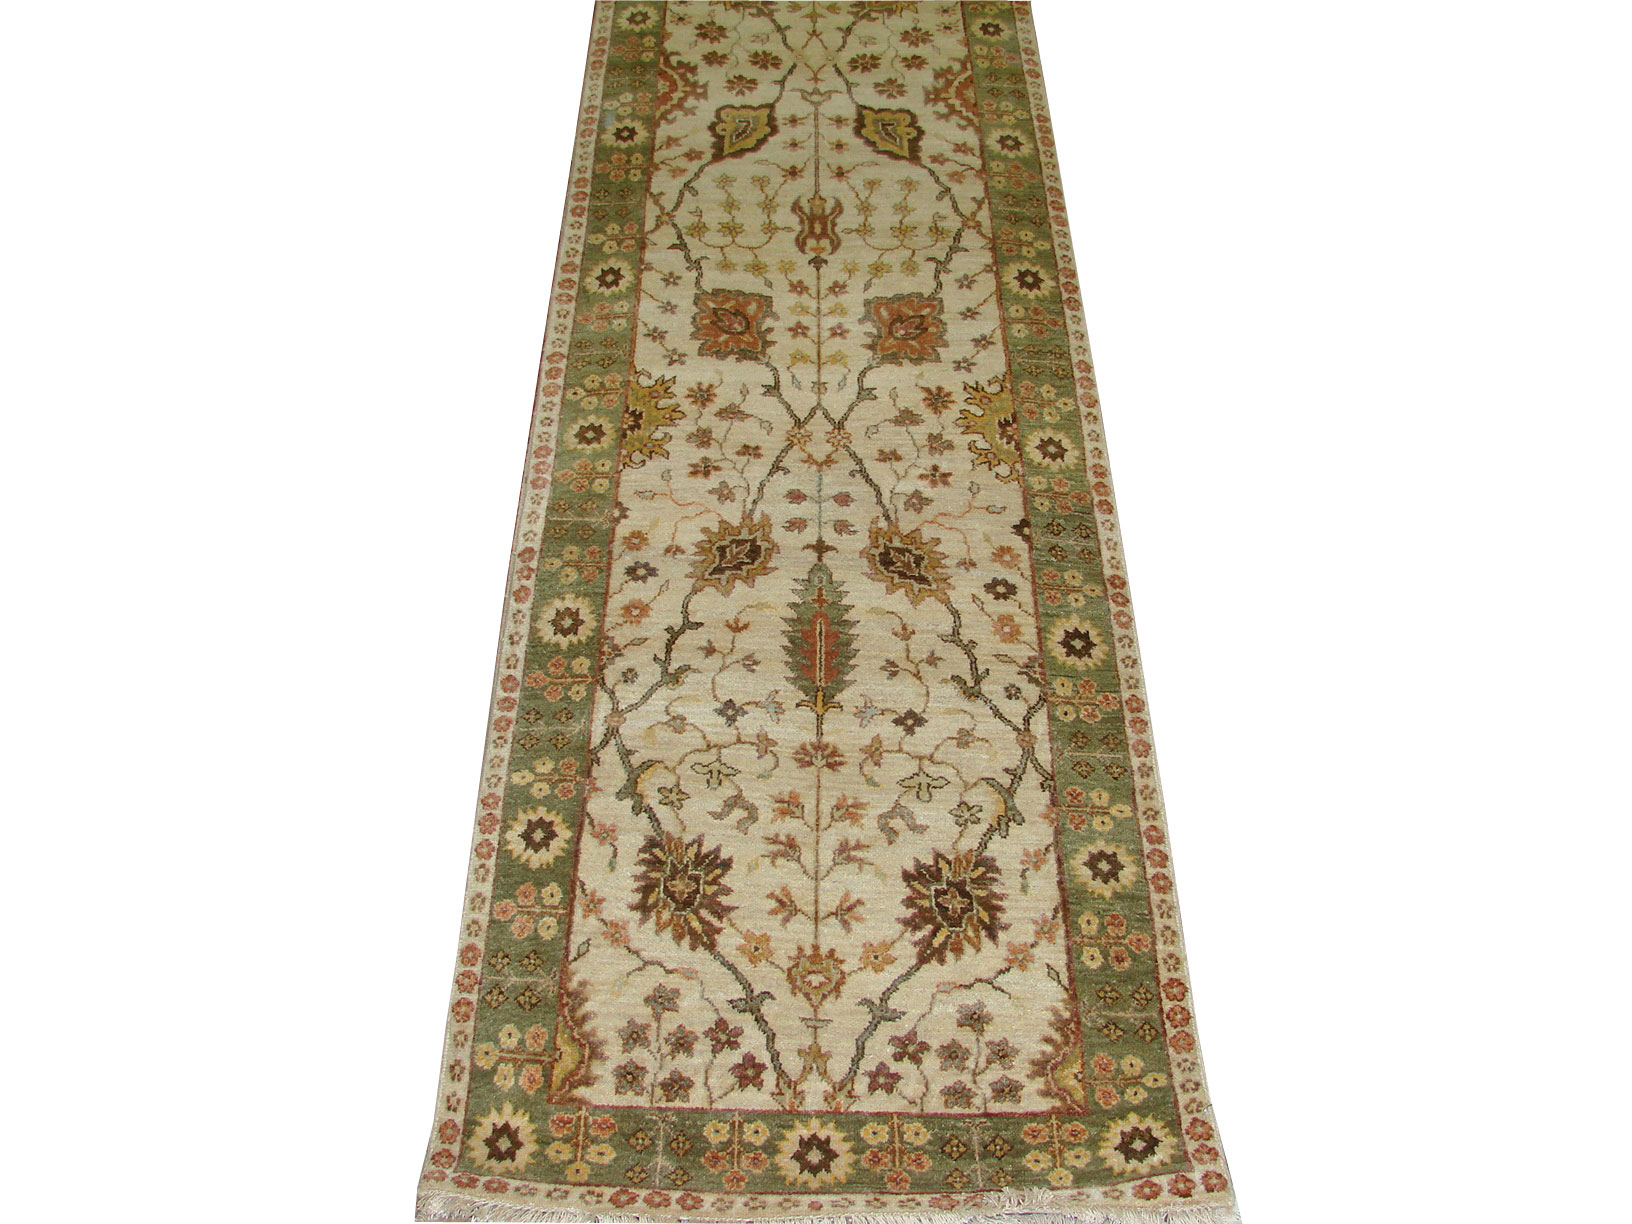 12 ft. Runner Traditional Hand Knotted  Area Rug - MR018643